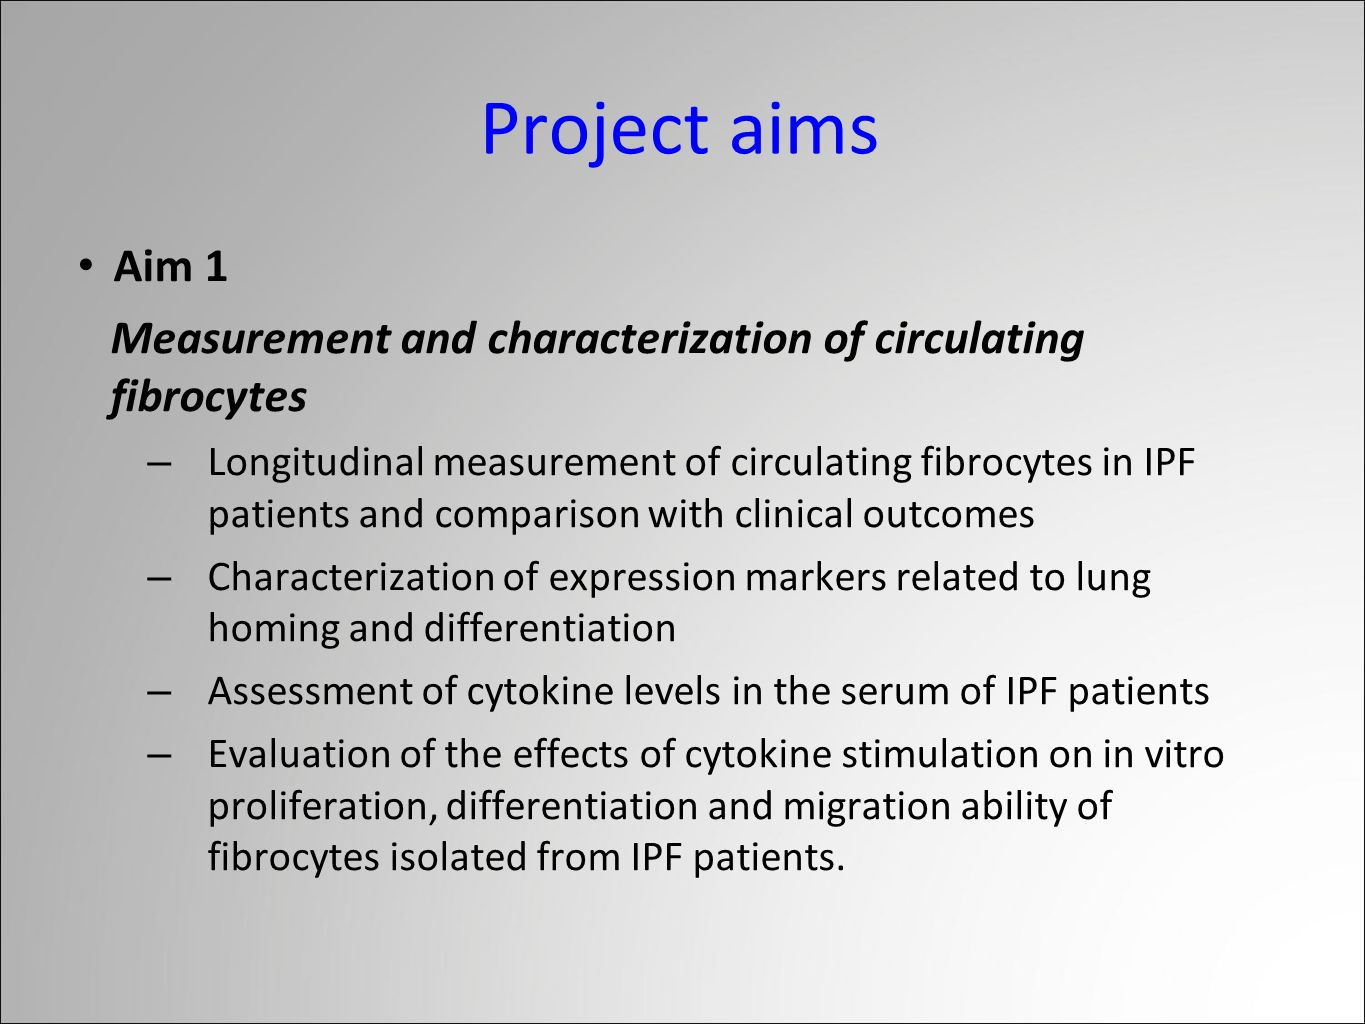 Project aims Aim 1. Measurement and characterization of circulating fibrocytes.